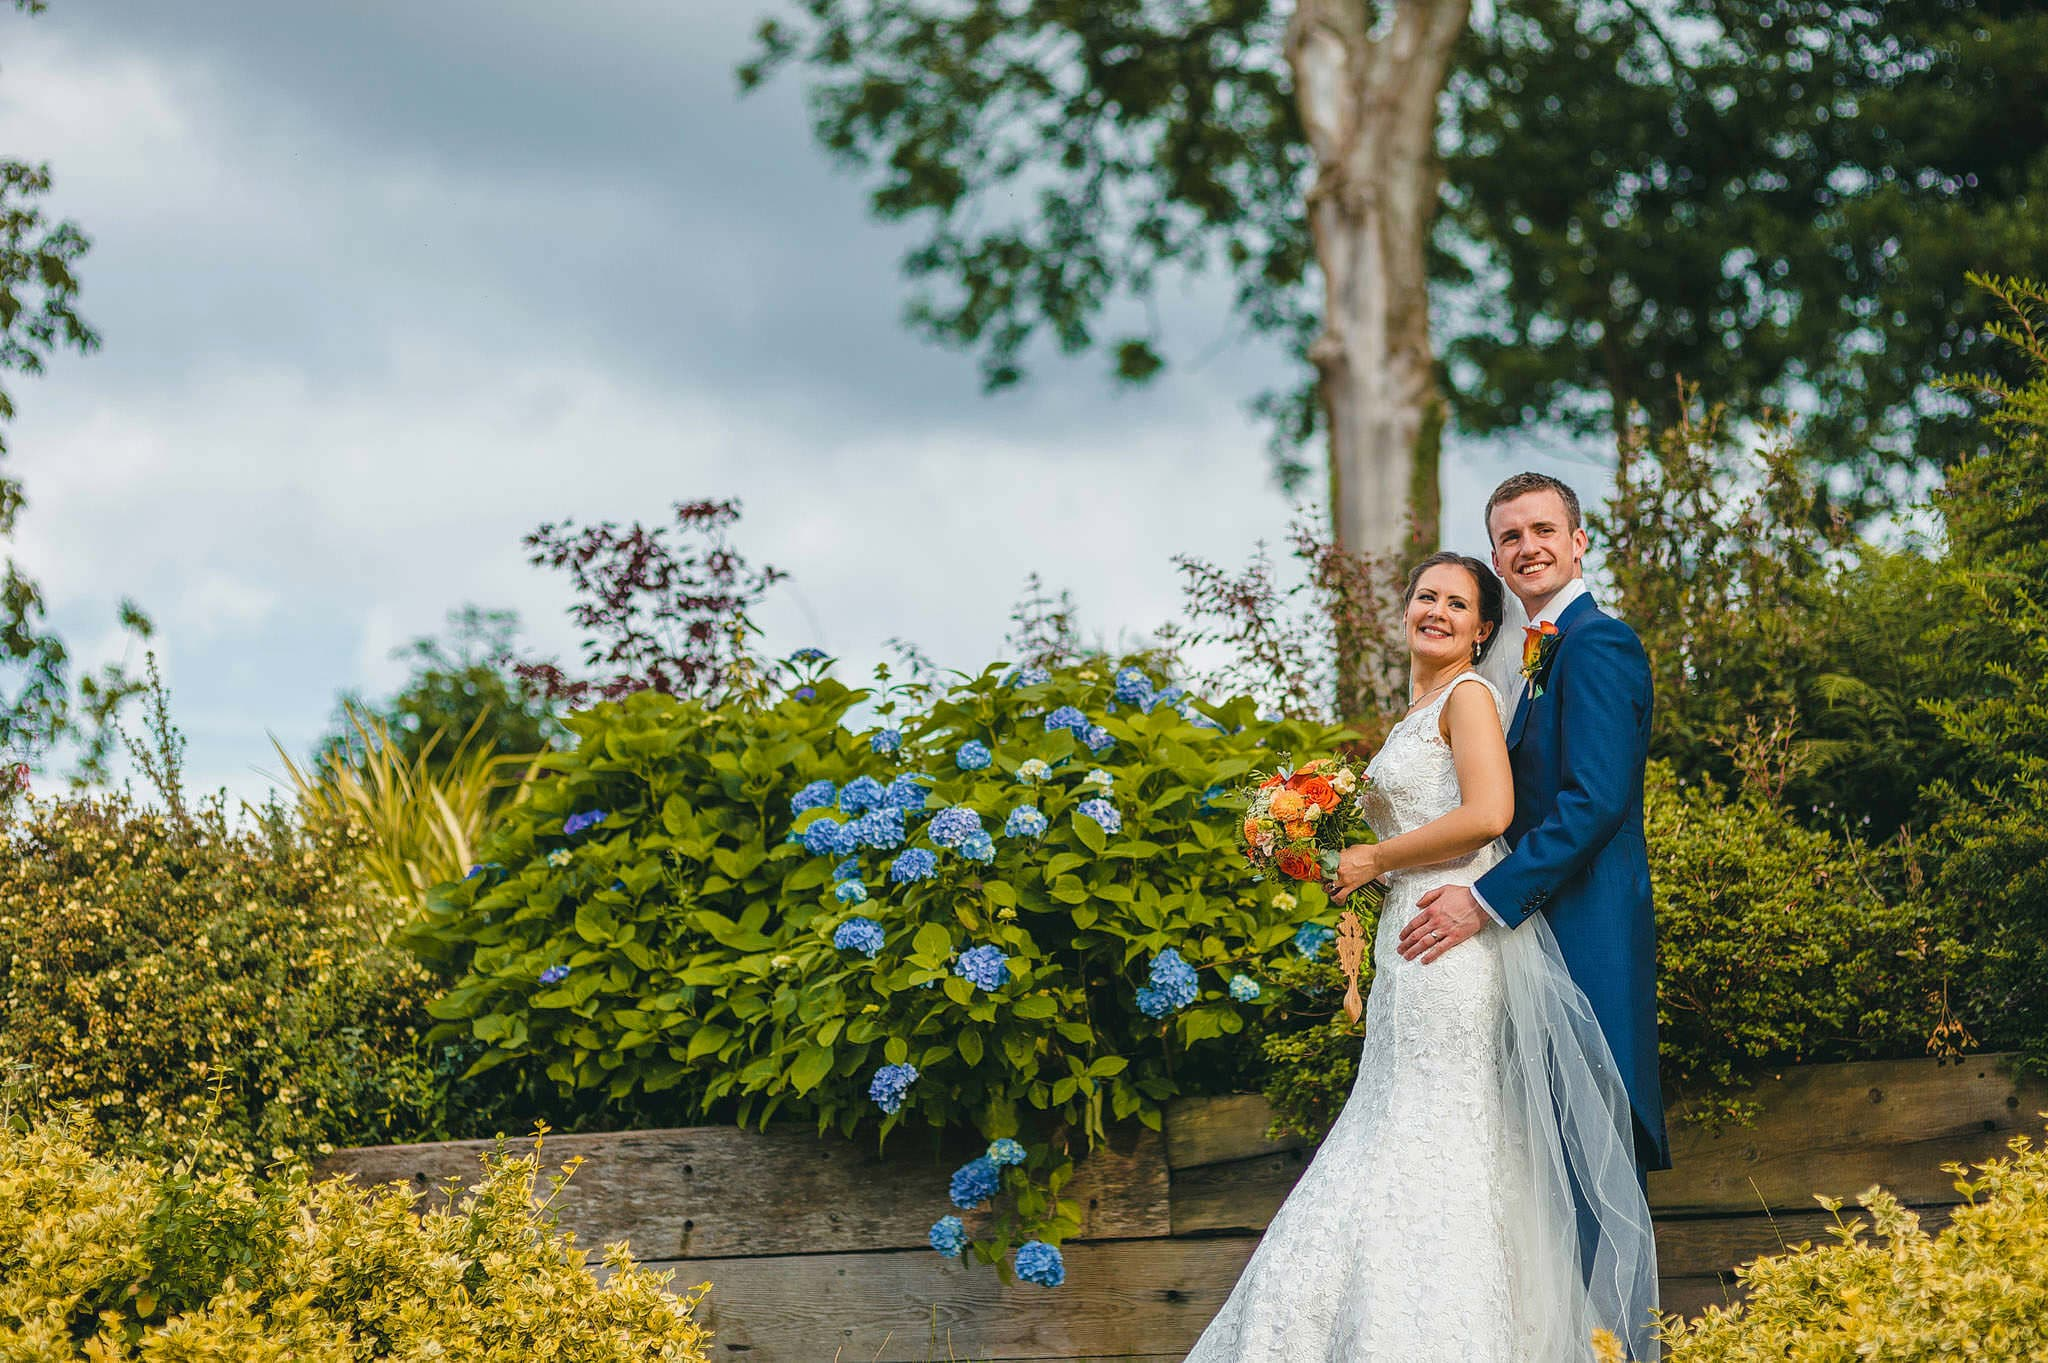 wedding photography midlands 47 - Midlands wedding photography - 2015 Review